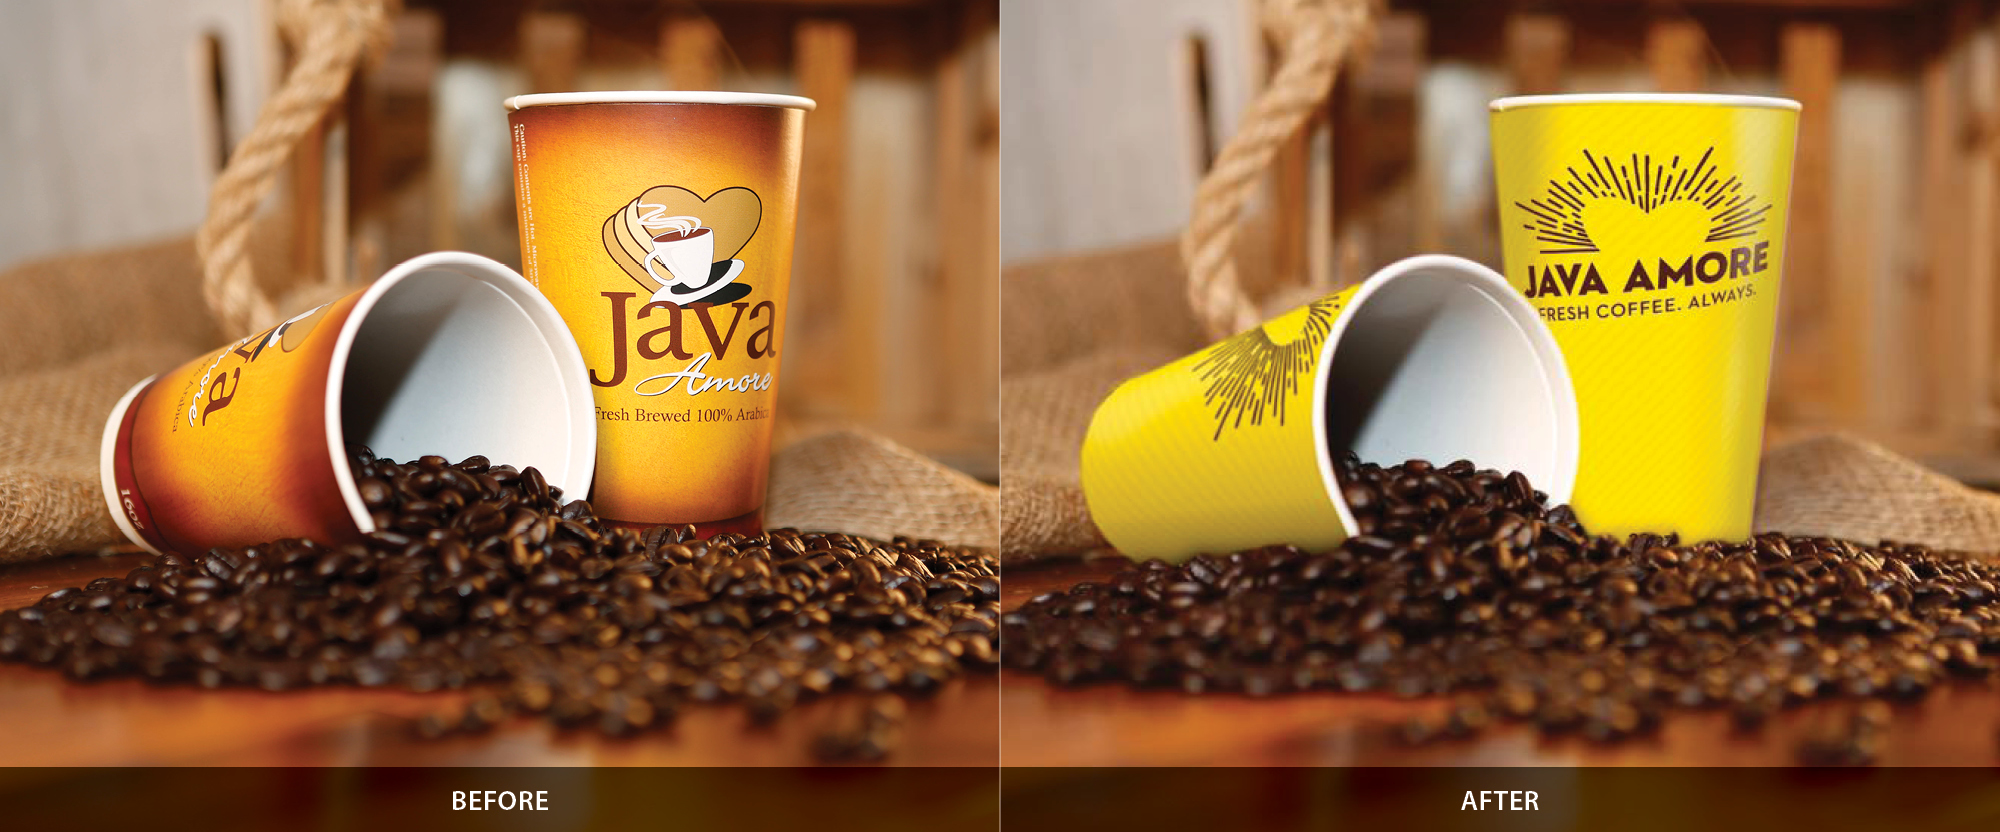 Love's Java Amore - Cup - Before & After